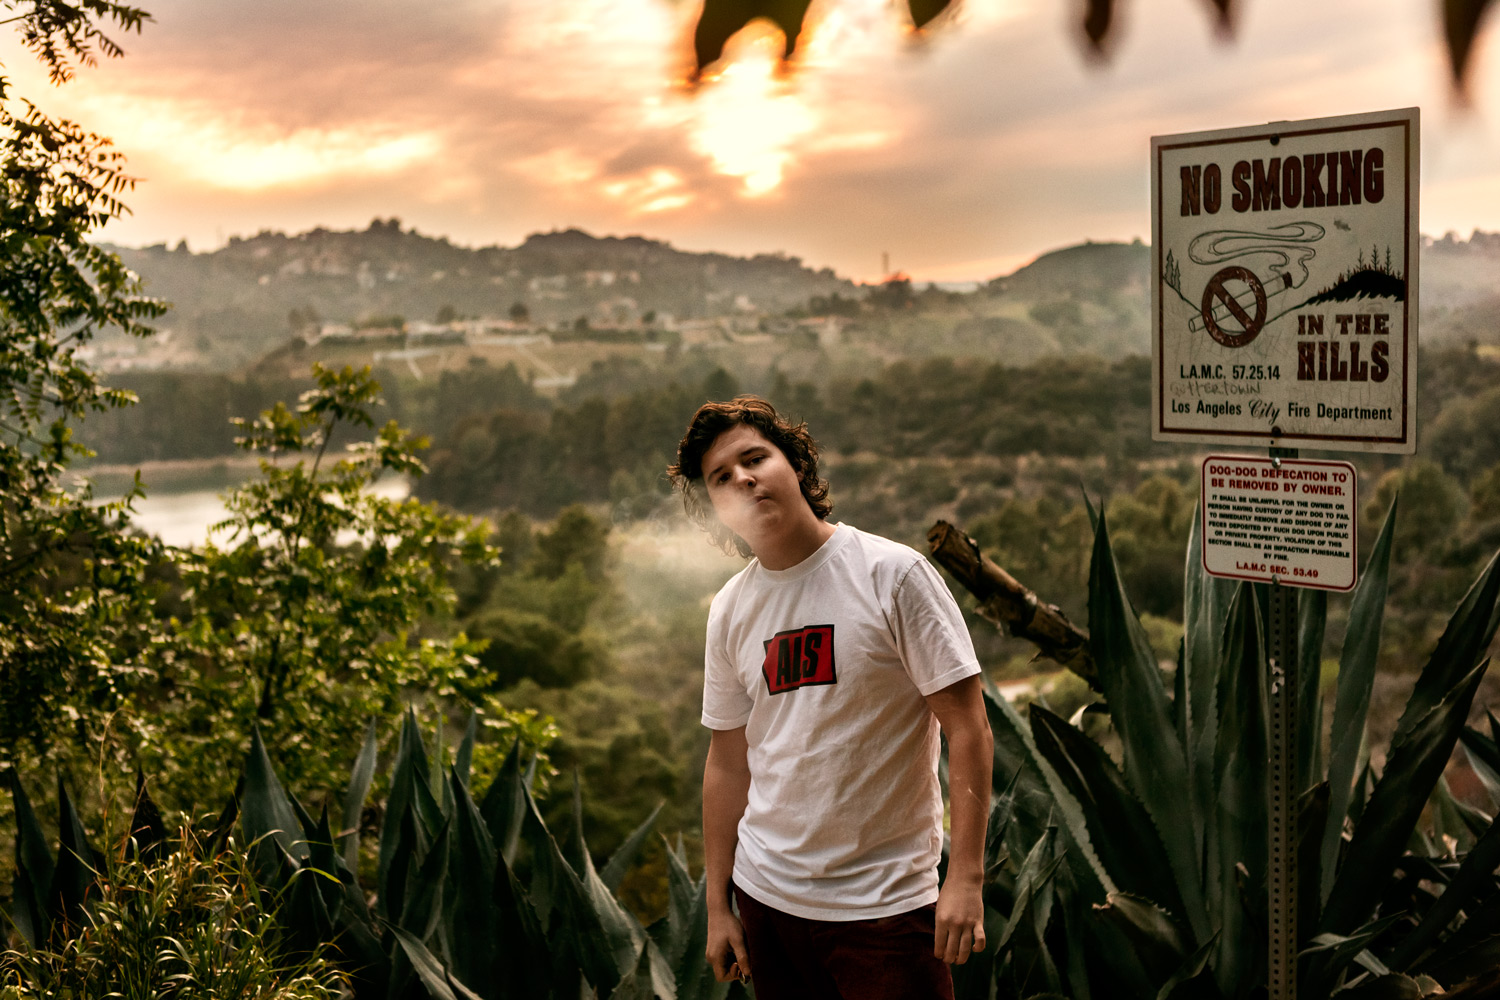 Danish Born singer Lukas Graham is a rebel in the Hollywood Hills - Los Angeles, 2014